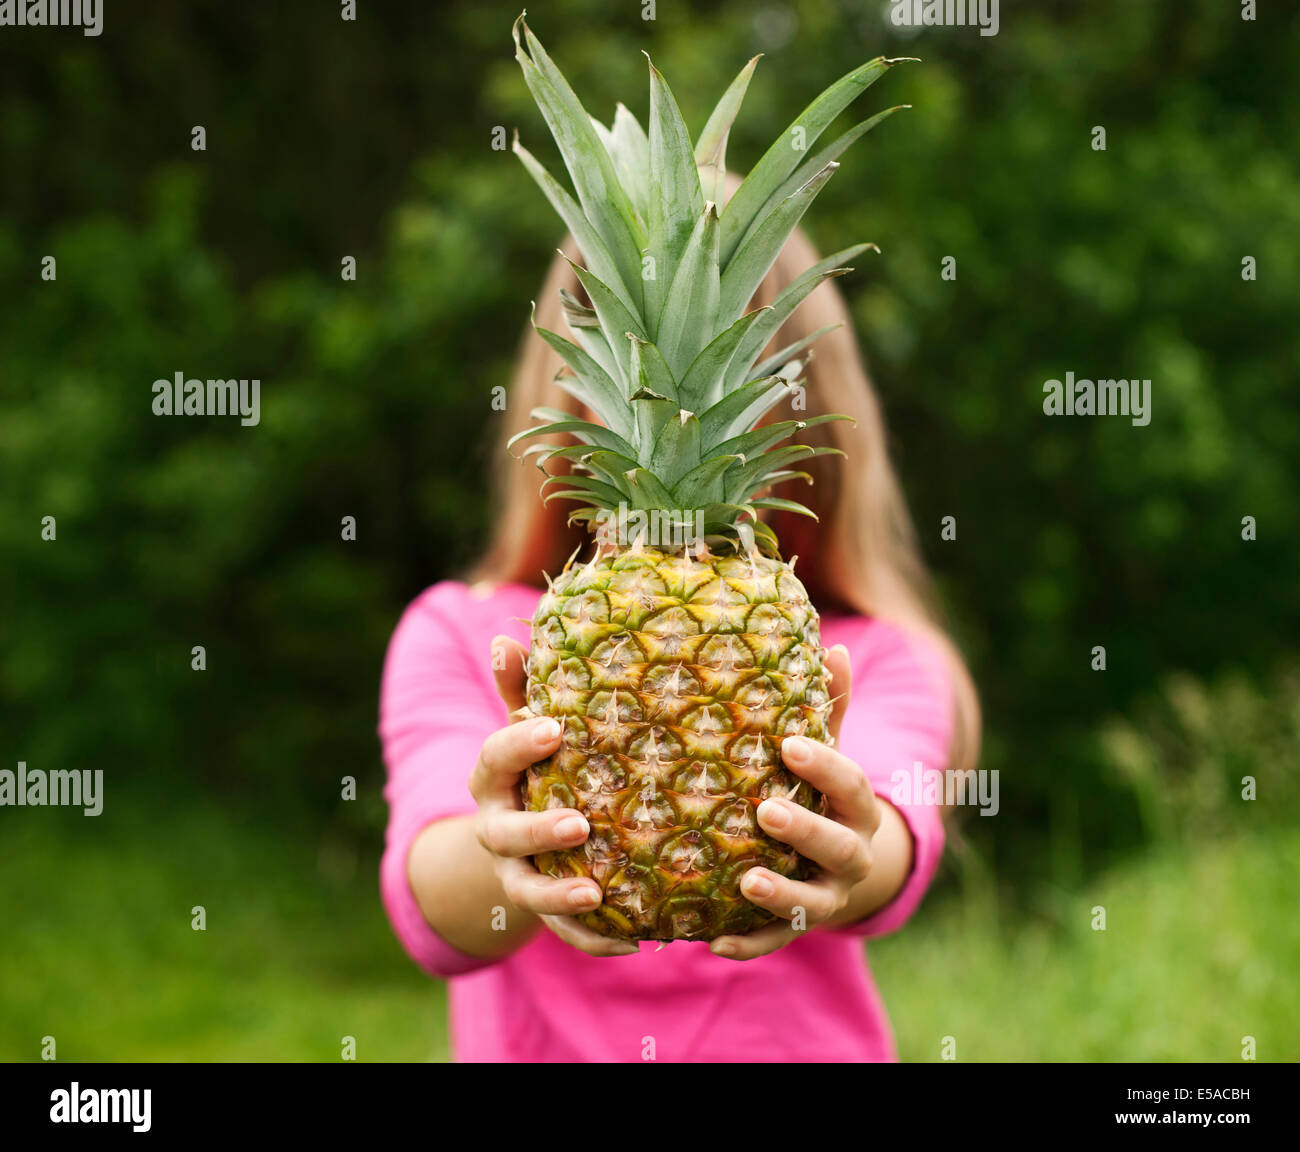 Young woman holding pineapple in her hands, Debica Poland - Stock Image